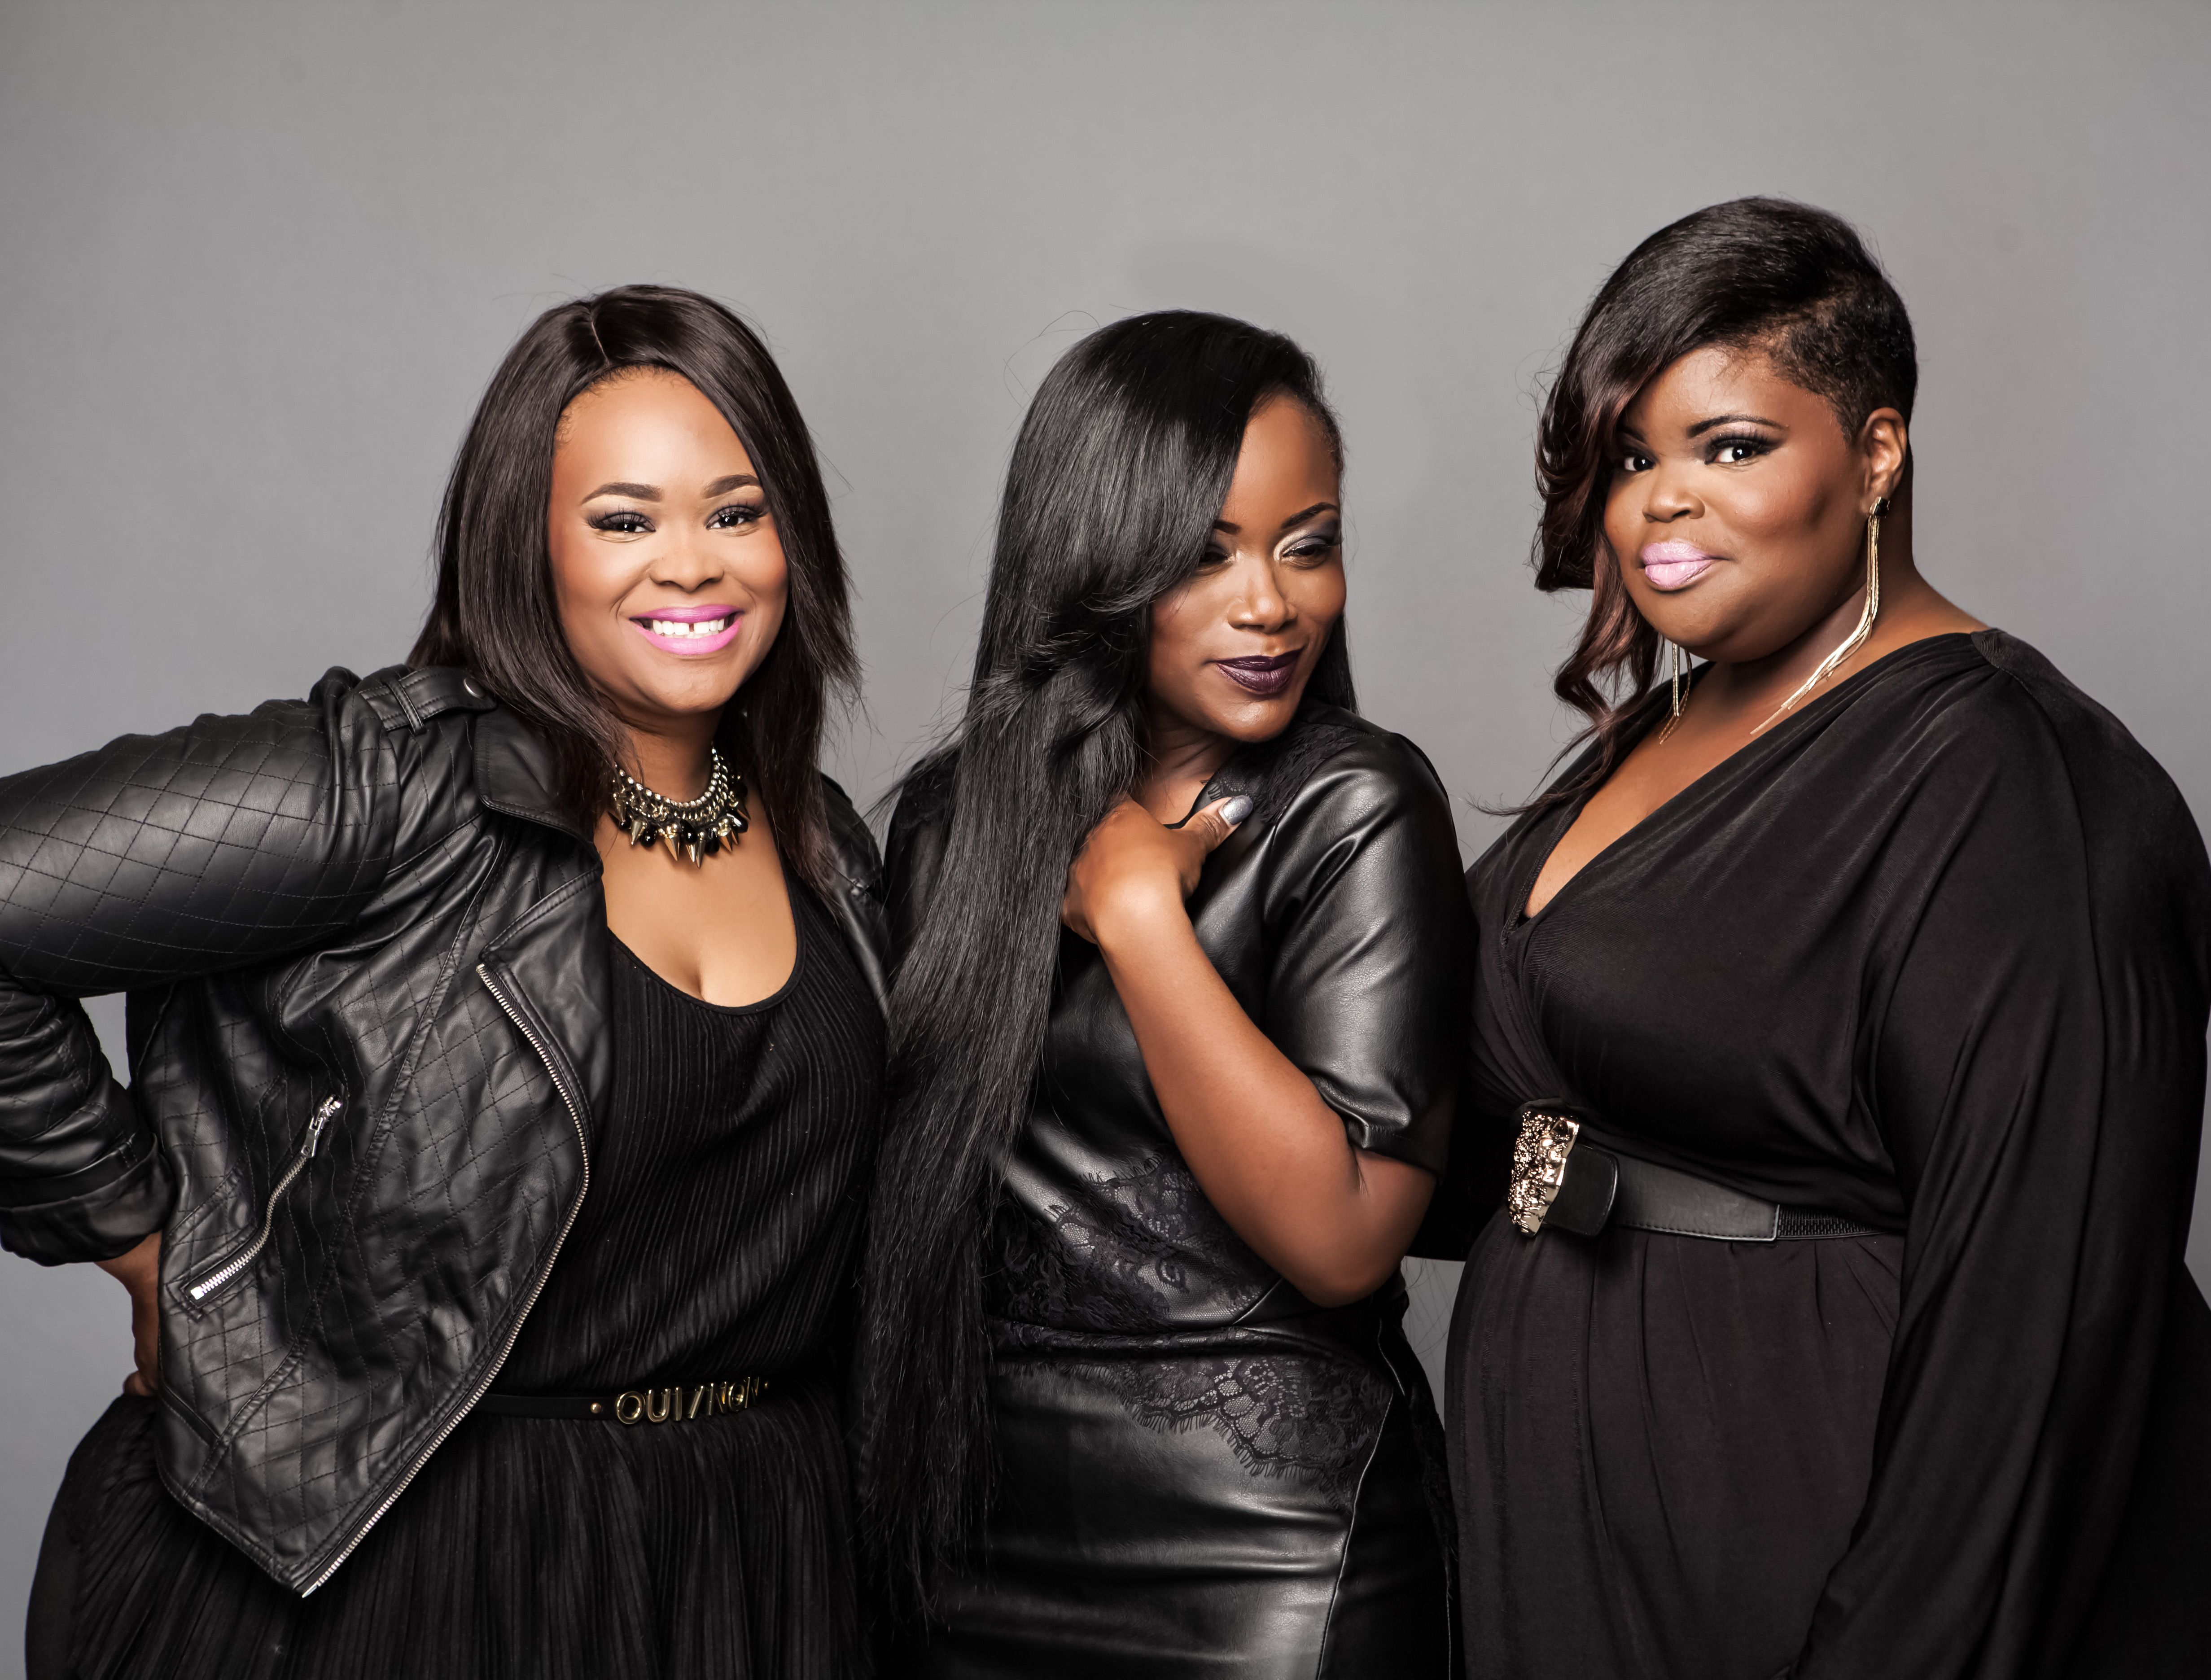 Zie'l (Christina Bell, Keyondra Lockett, and Crystal Bell